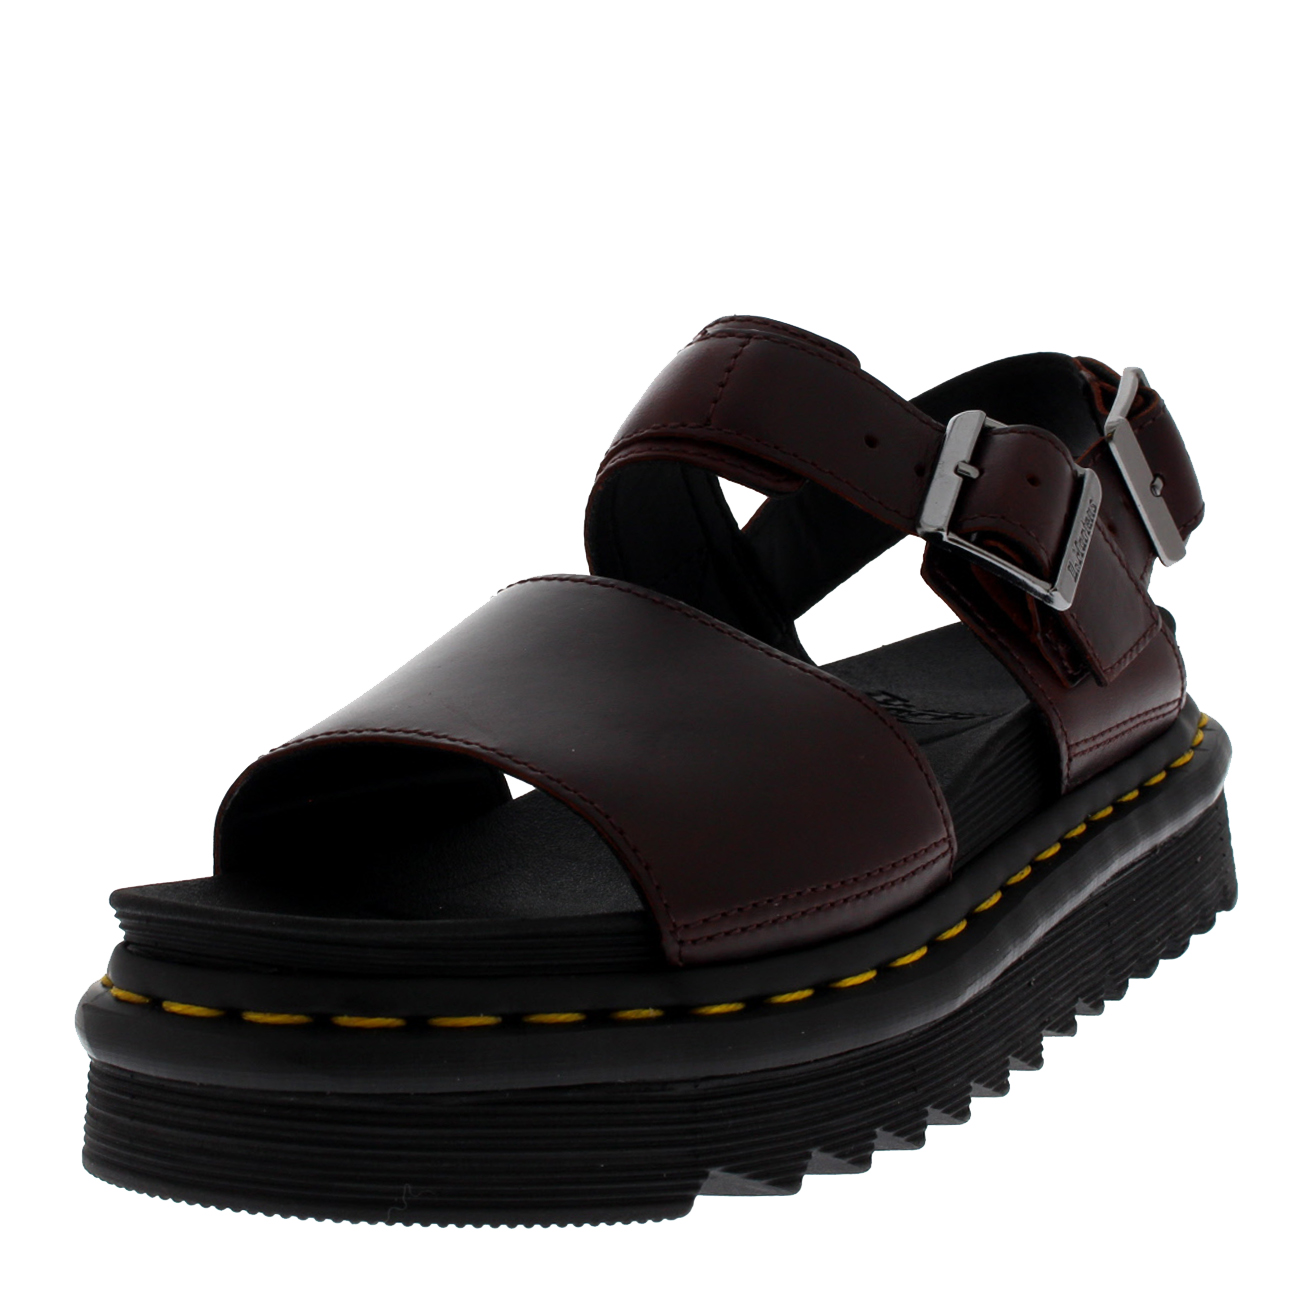 7ace24faada Details about Womens Dr Martens Voss Charro Brando Burgundy Leather Platform  Sandals US 5-11